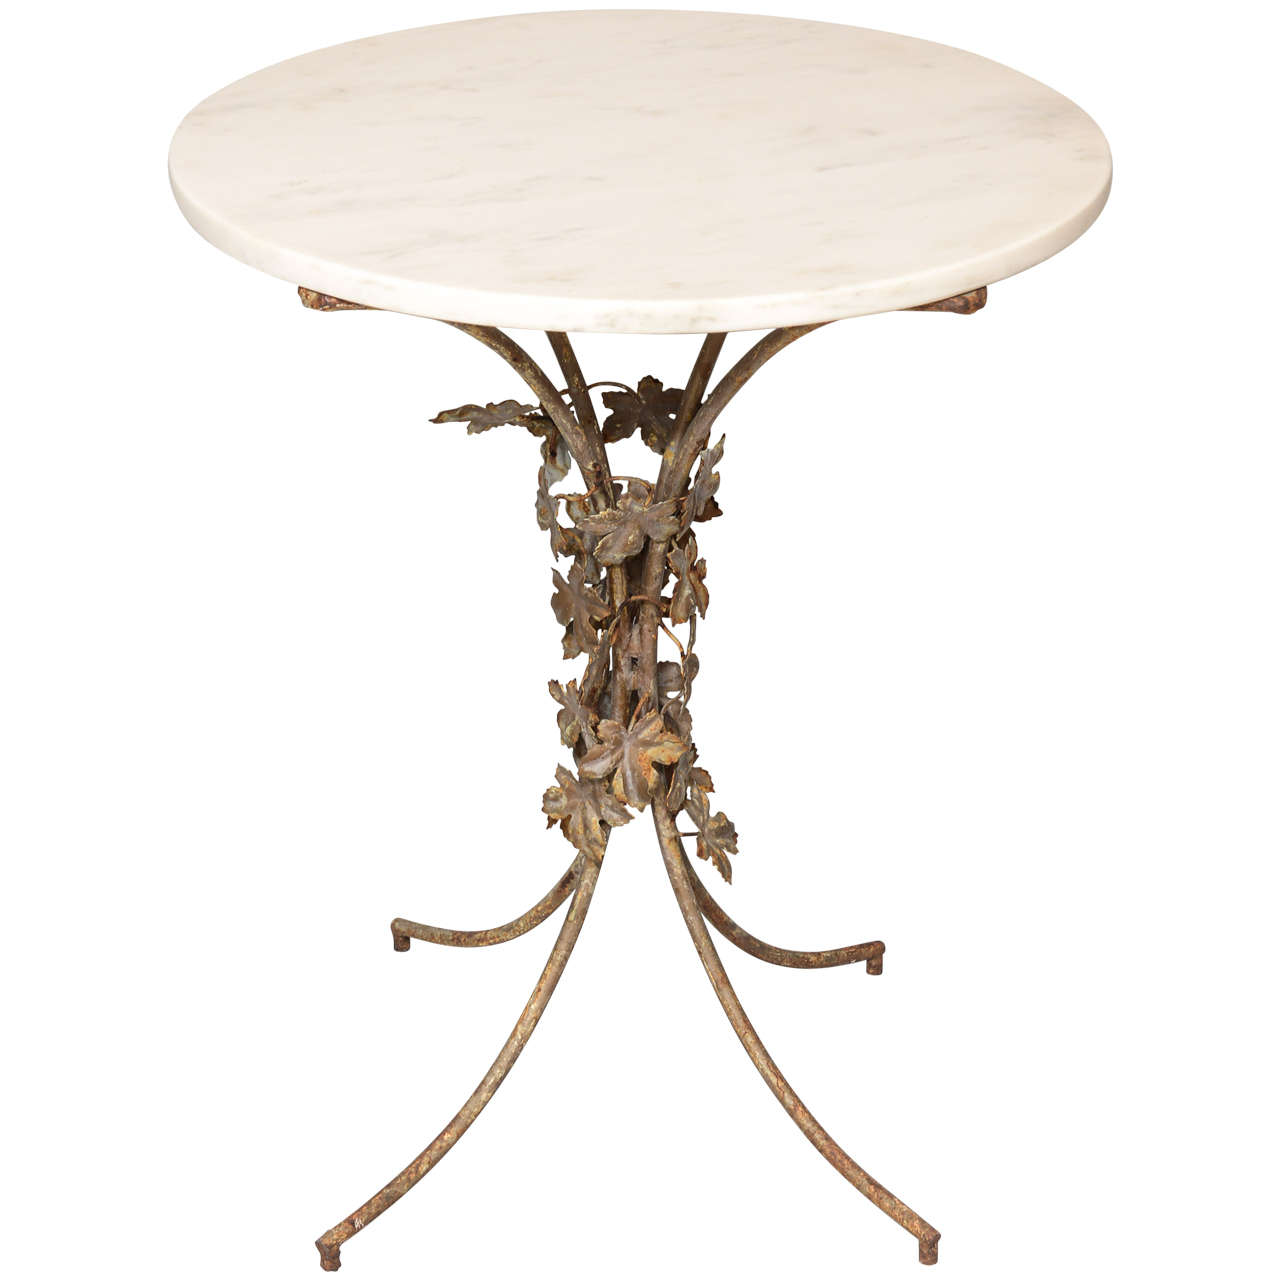 Foliate Iron Table with Marble Top